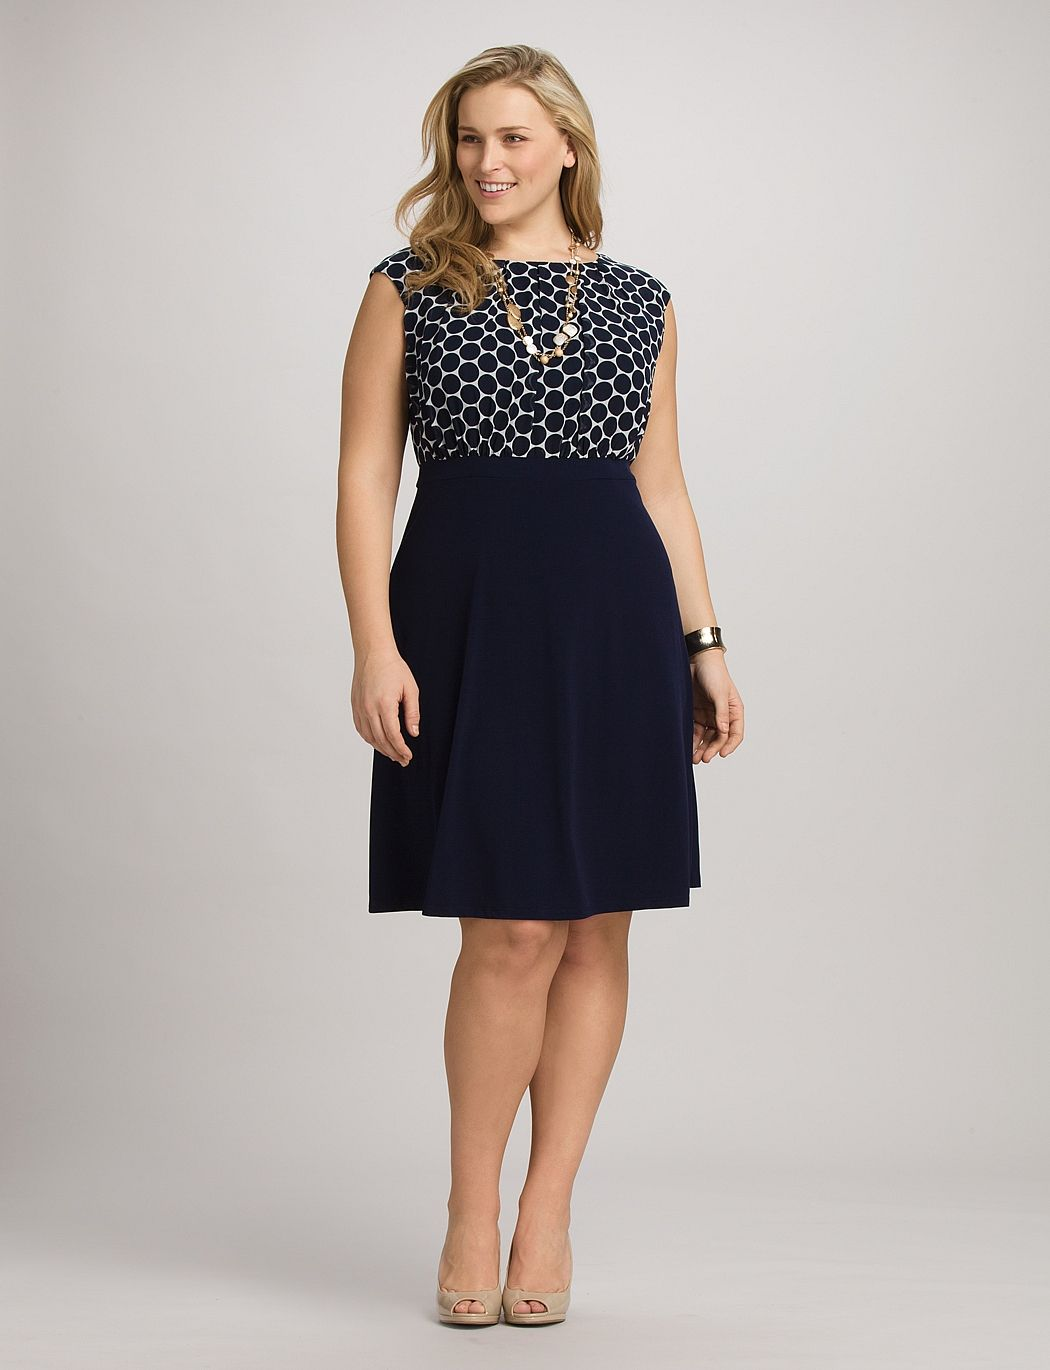 The holy ghost electric show : Dress barn plus size dresses